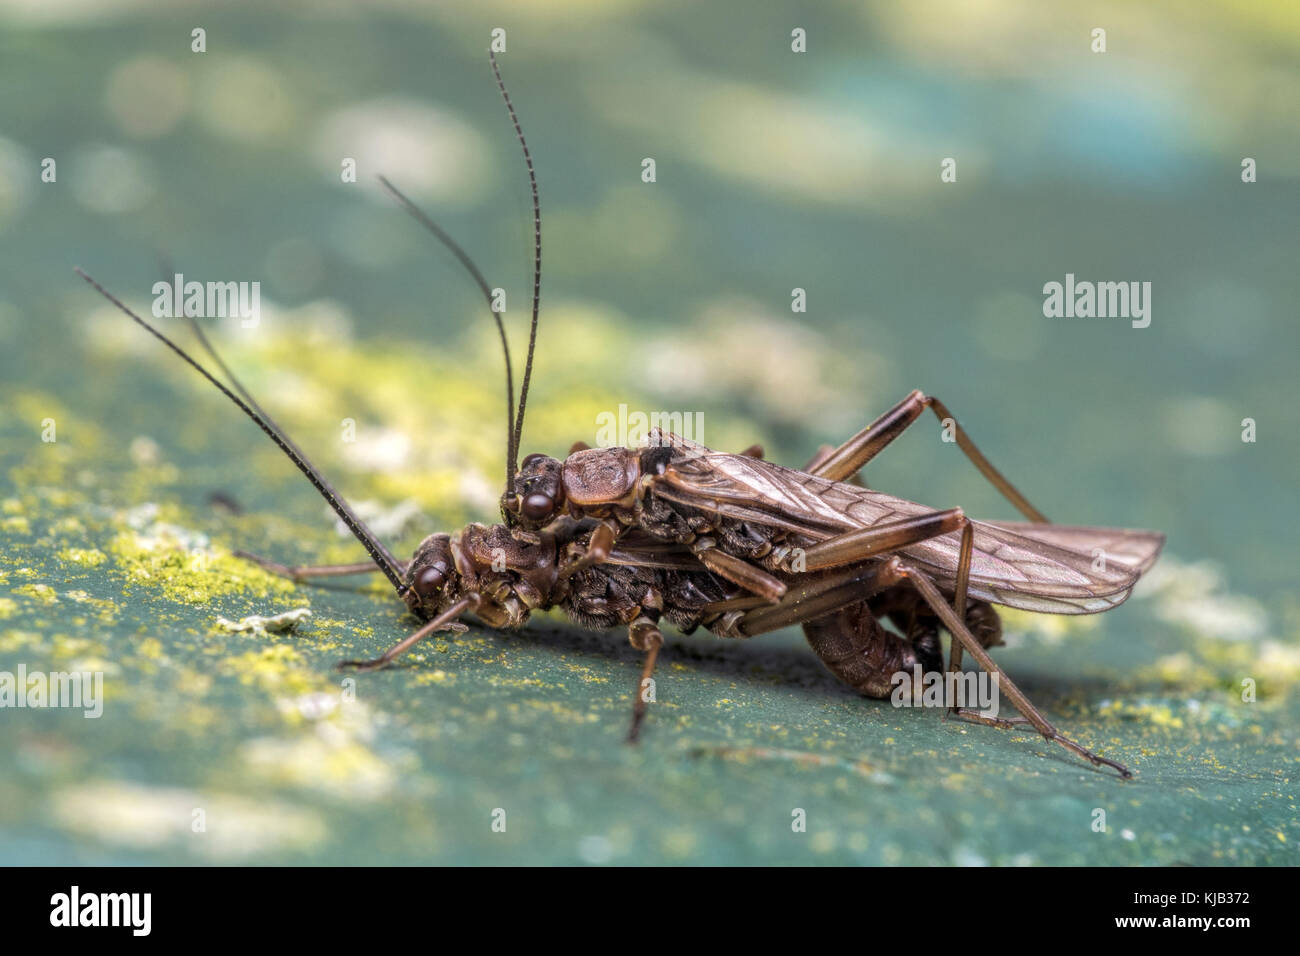 Mating Stoneflies on a signboard in a nature reserve. Cabragh Wetlands, Tipperary, Ireland. - Stock Image